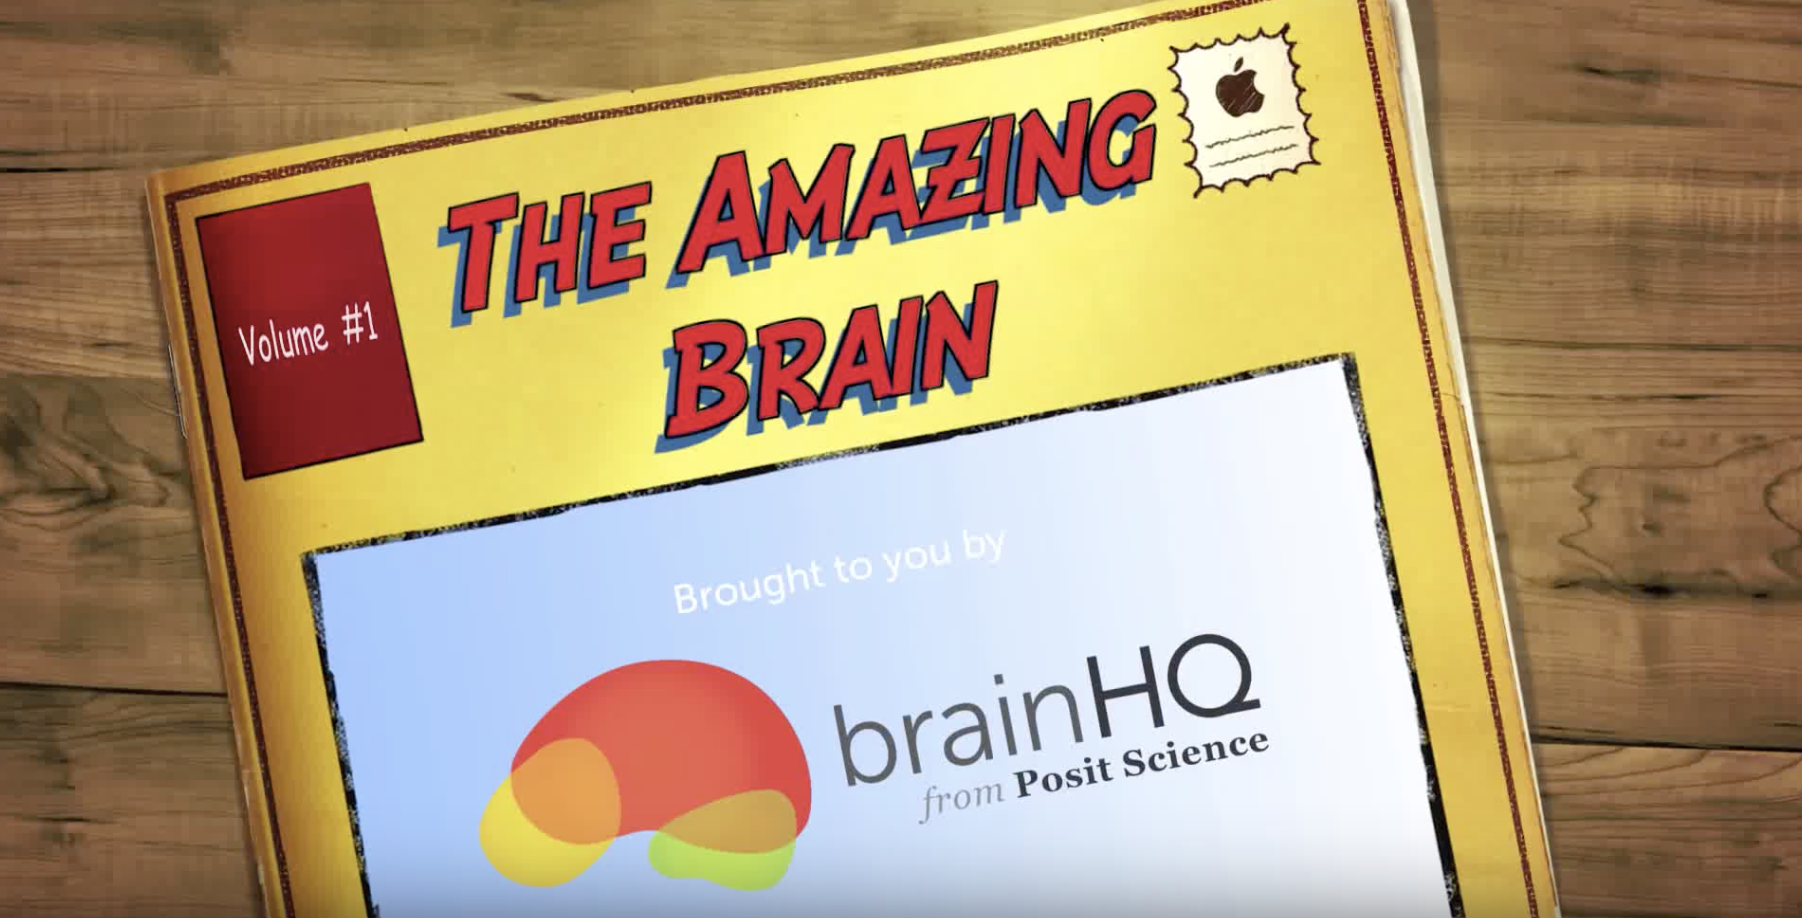 The Amazing Brain, Volume 1: Do we only use 10% of our brains?